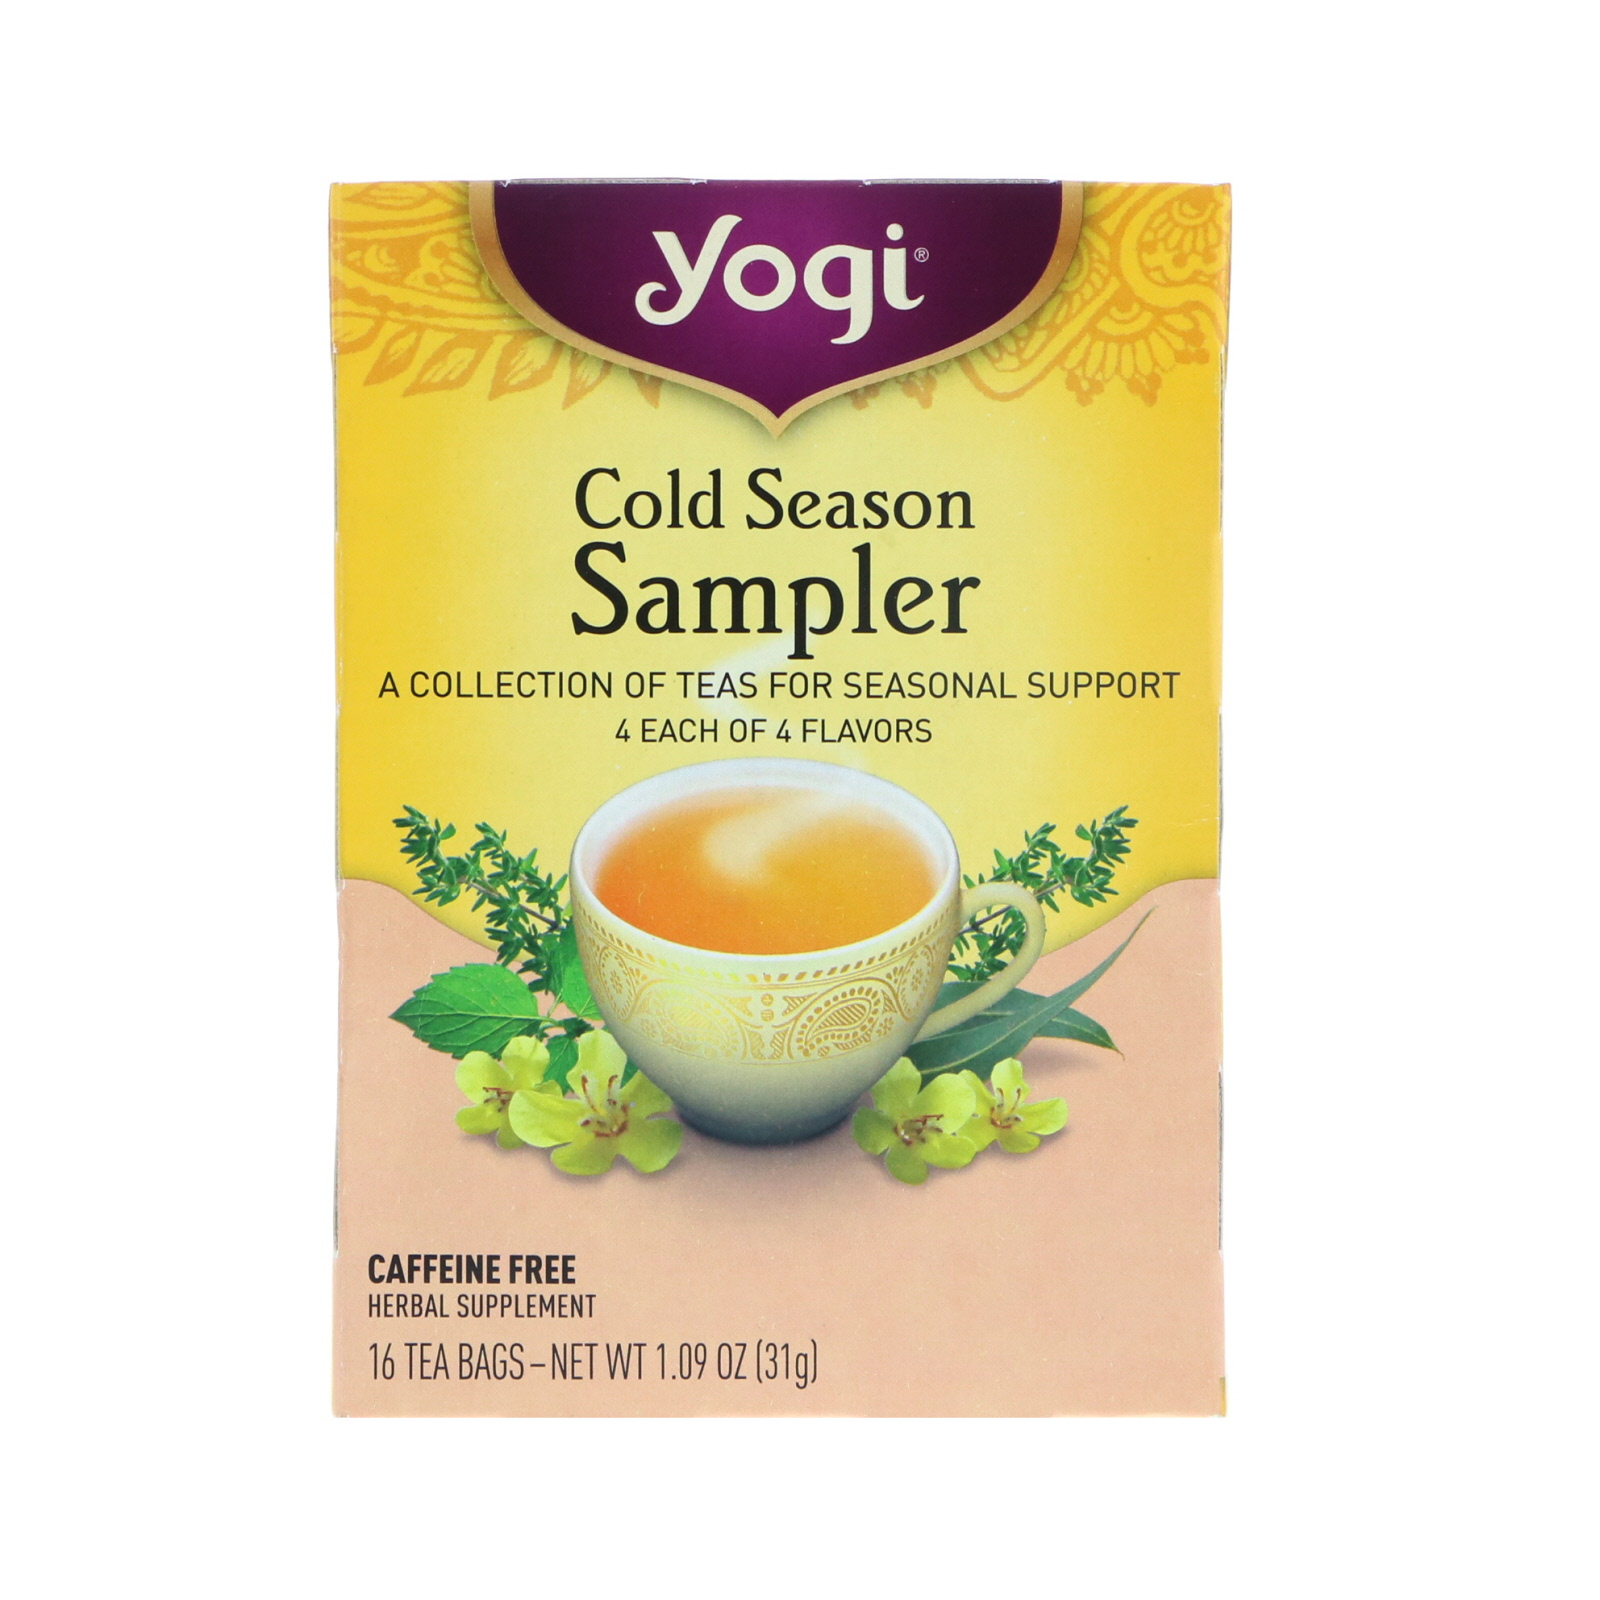 Yogi Tea Cold Season Sampler 16 Bags 1 09 Oz 31